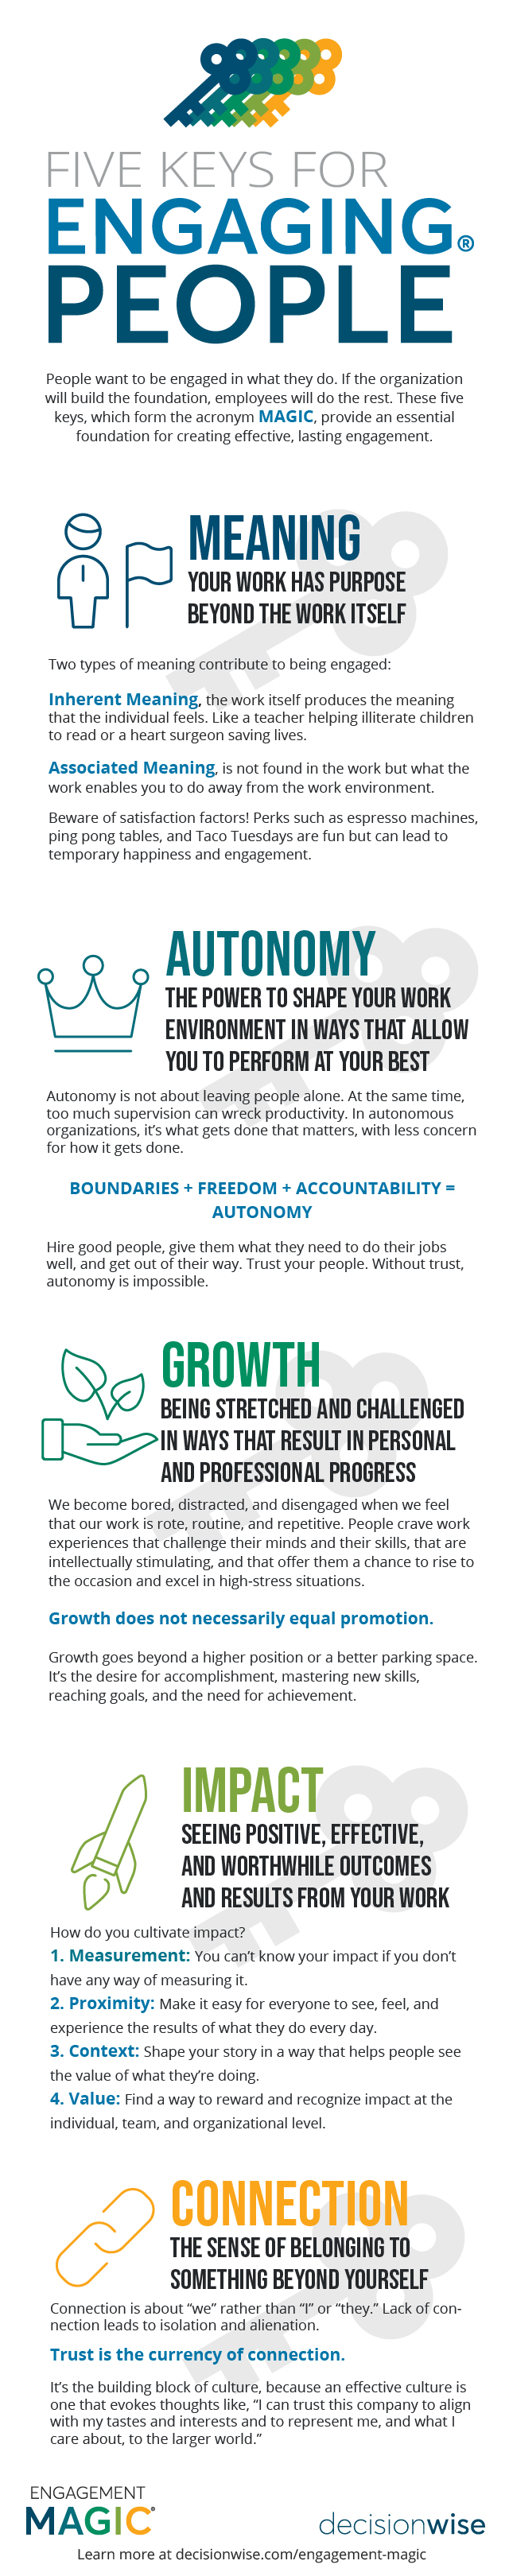 5 keys for engaging people infographic